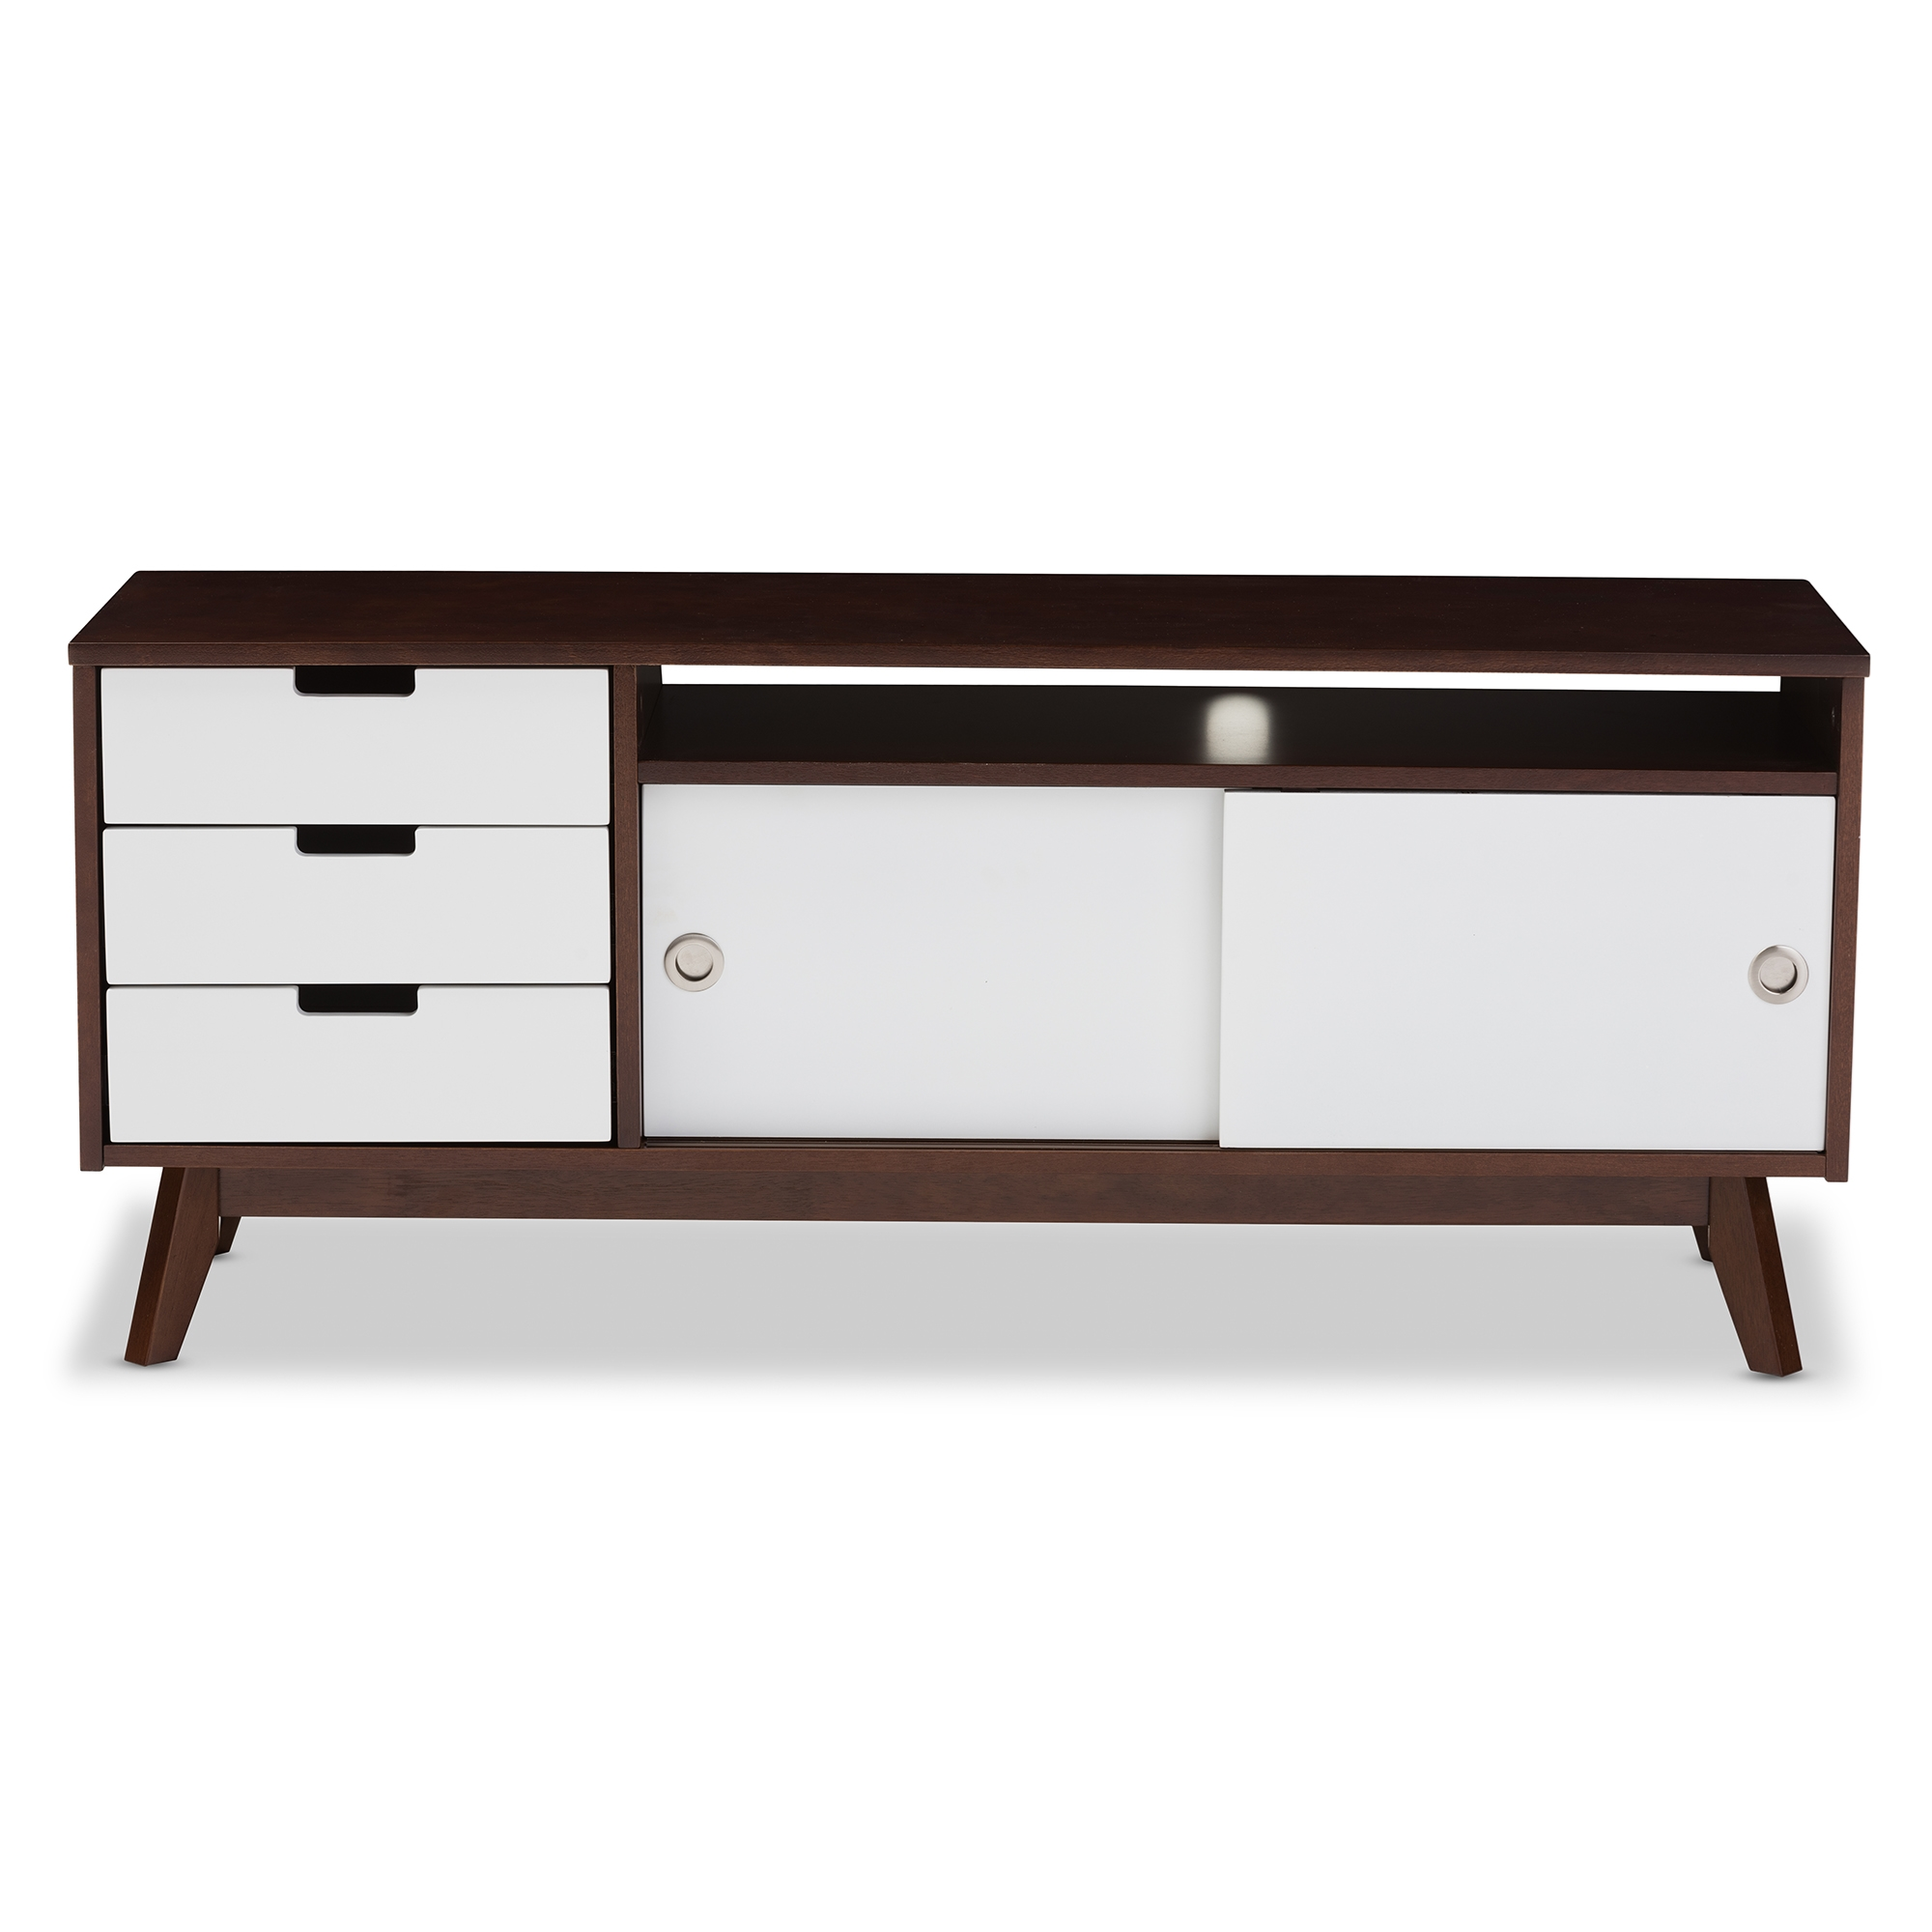 century autocad i midcentury chris tv design diy more even and happy this by paul cabinet mccobb made me chriss inspired modern in tweaks mid changed with the making further finally felt s was